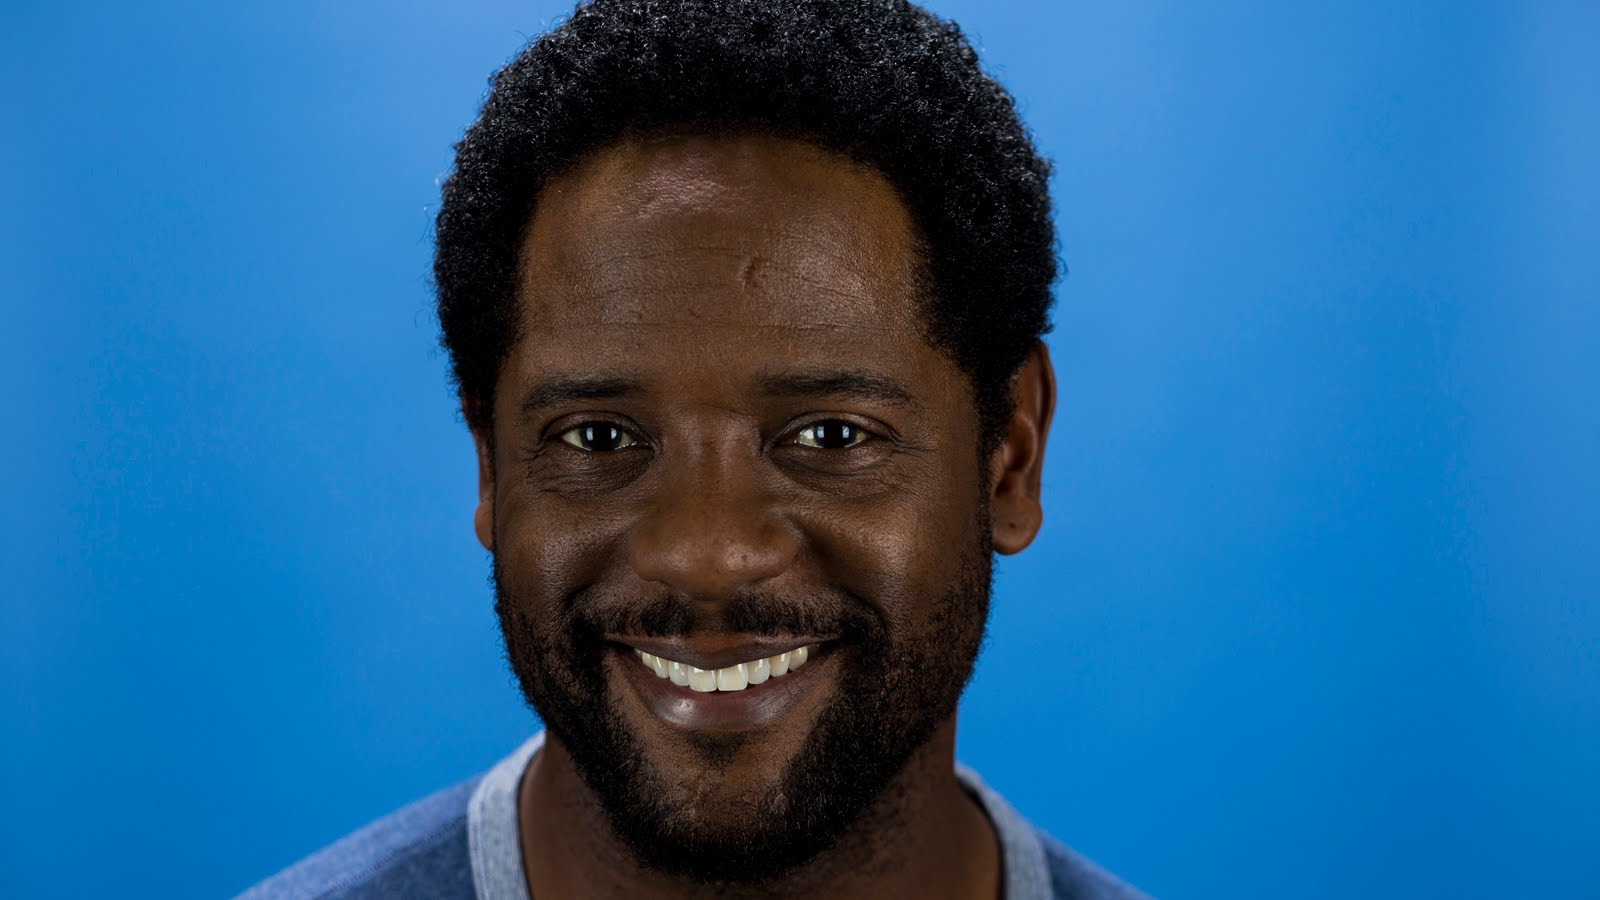 Blair Underwood Backgrounds